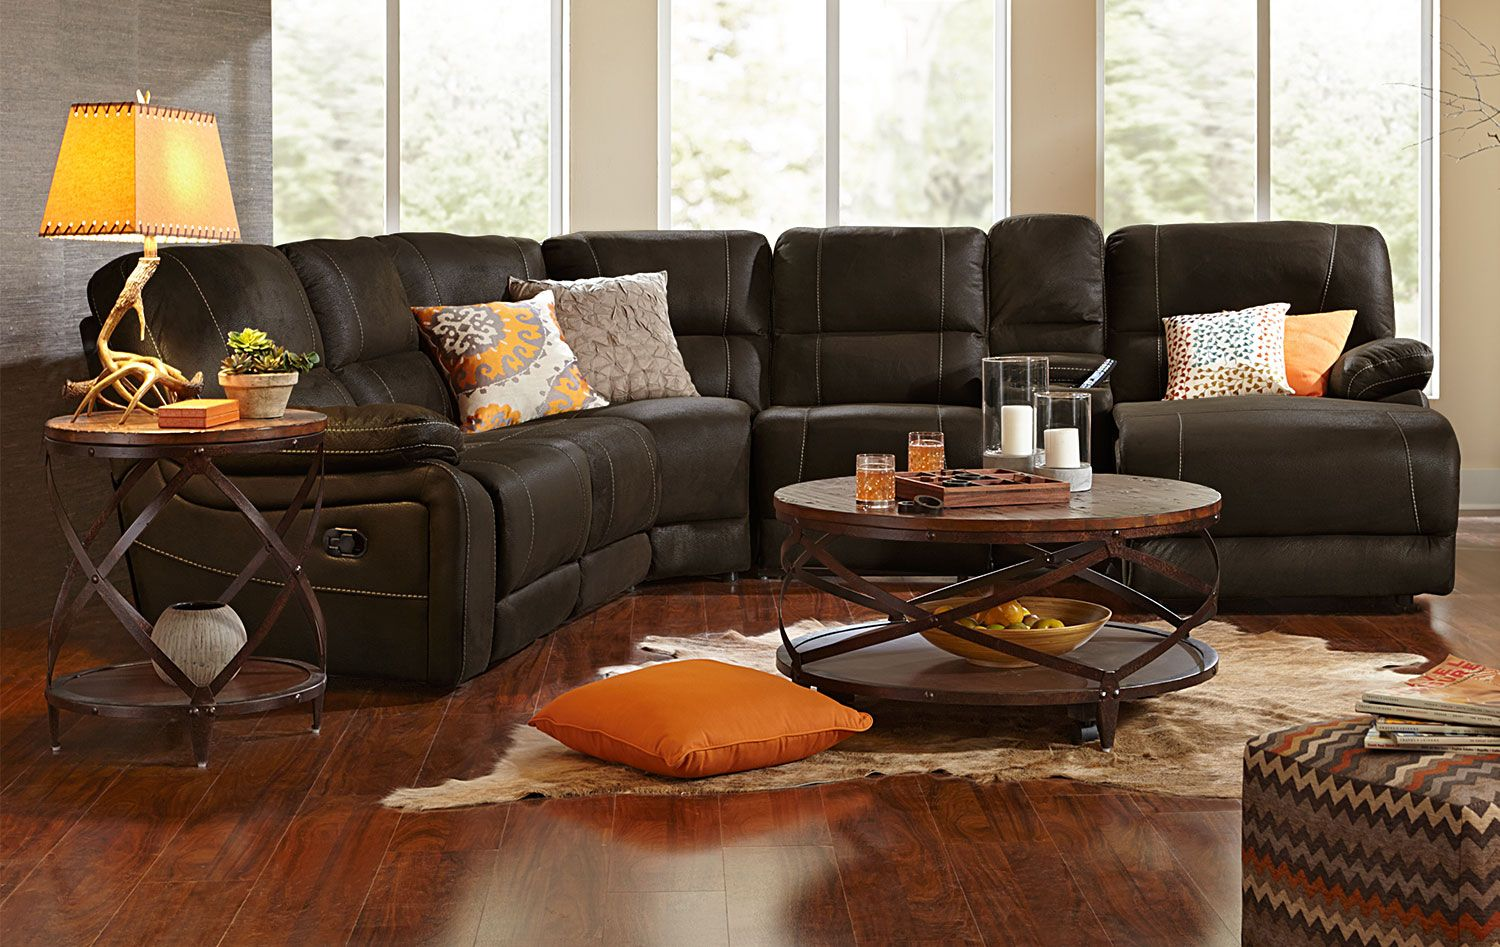 The Wyoming Collection  Saddle Brown  Furniture  Pinterest Amazing Cheap Living Room Sets Under 300 Inspiration Design